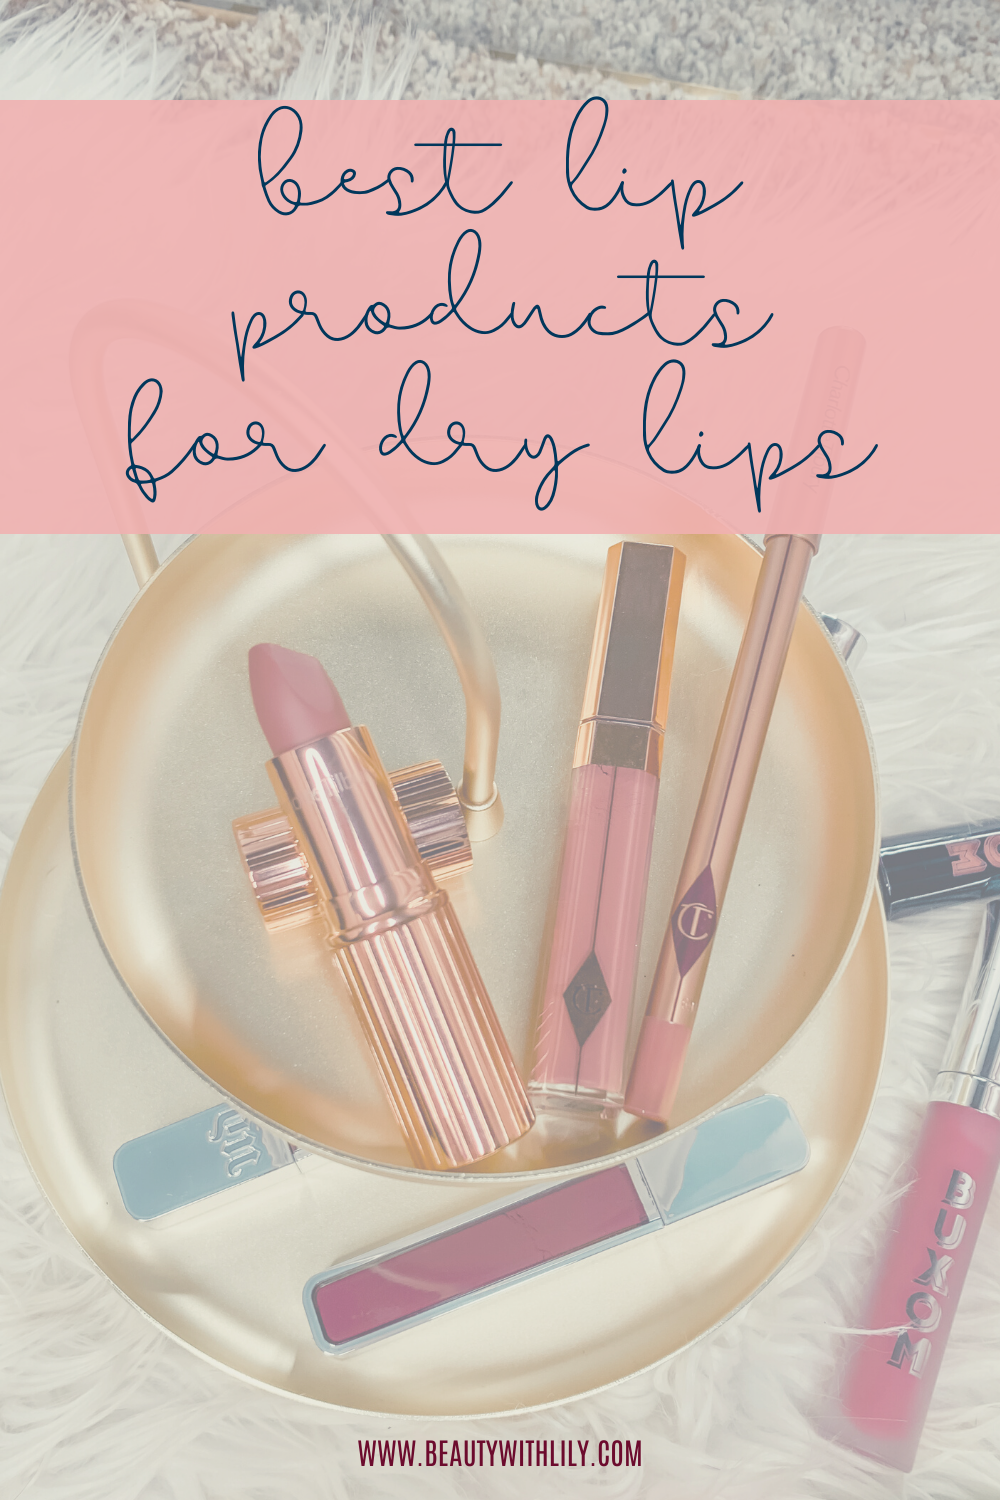 Best Lip Products for Dry Lips // Lipsticks for Dry Lips // Must Have Lip Colors // Lips Colors for Dry Lips // Natural Lip Colors // Best Lip Glosses // Best Lipsticks // Drugstore Lip Products // High-End Lip Products | Beauty With Lily #lipsticks #lipproducts